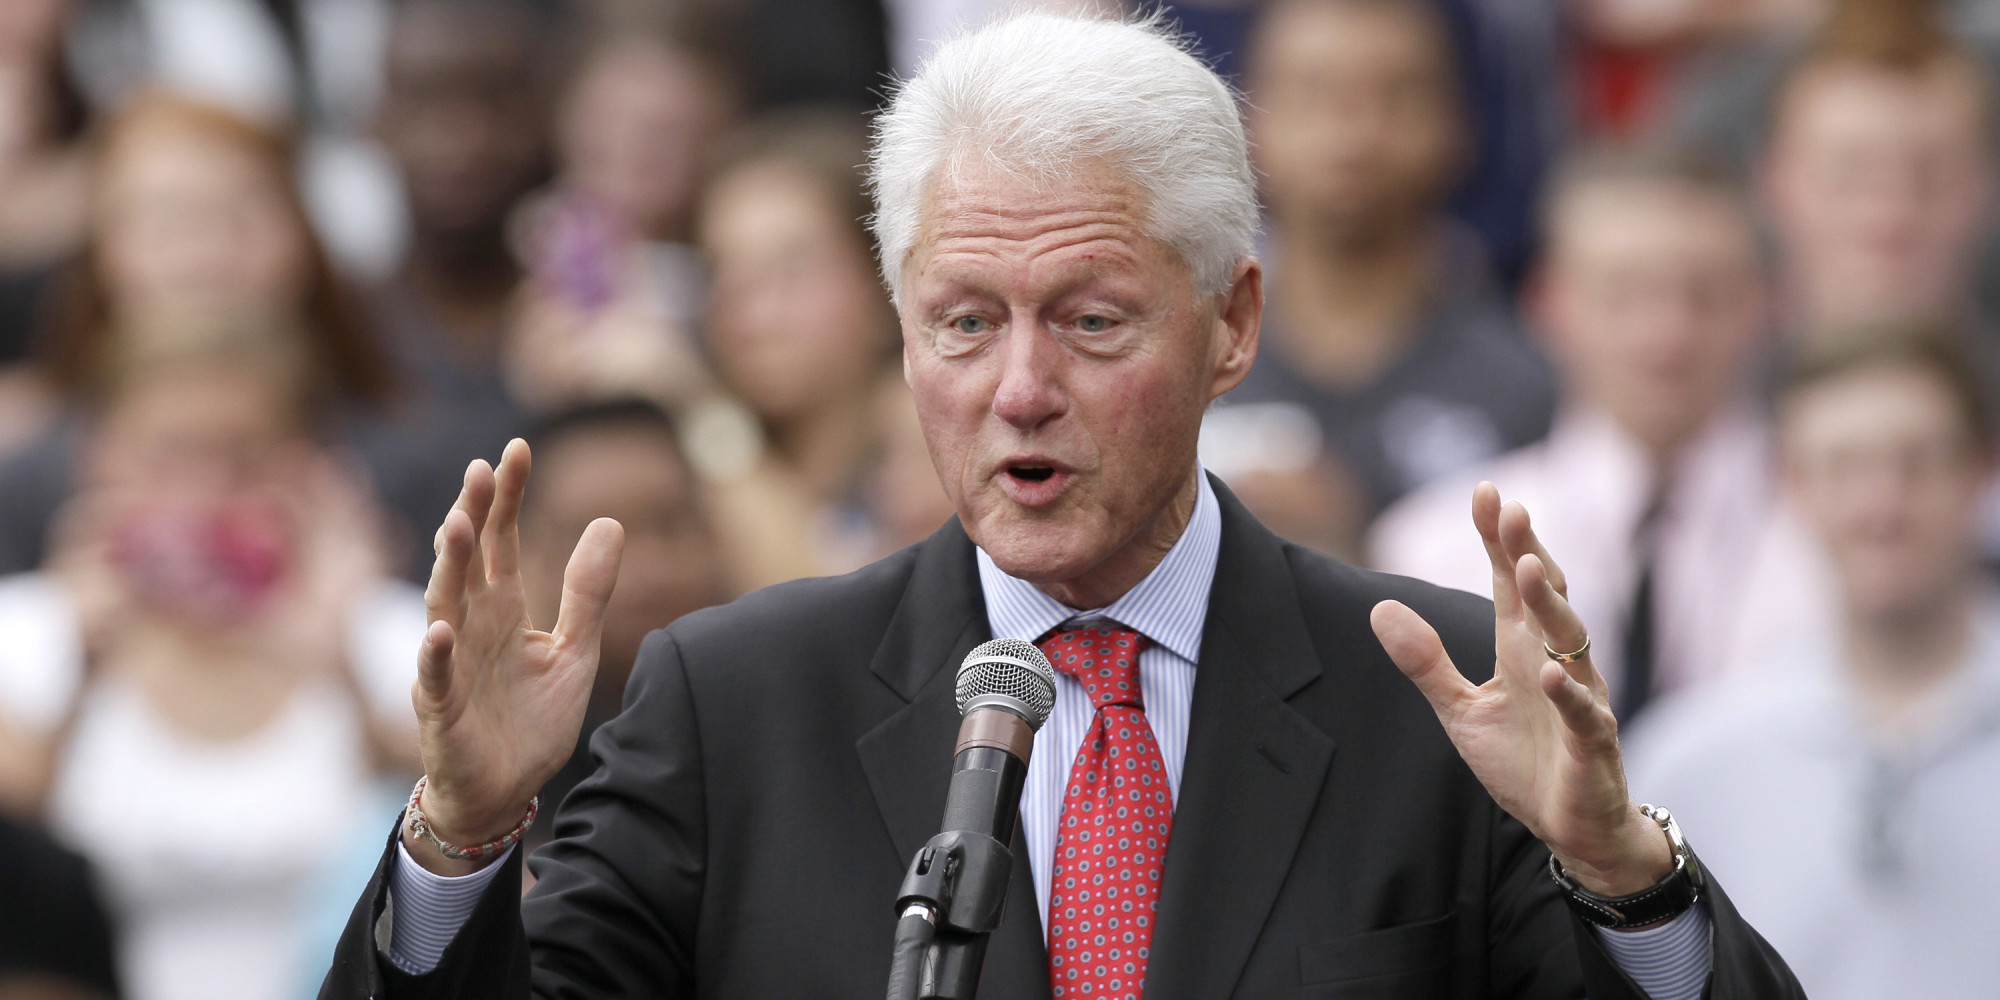 Bill Clinton Returns To Arkansas To Energize Voters | HuffPost